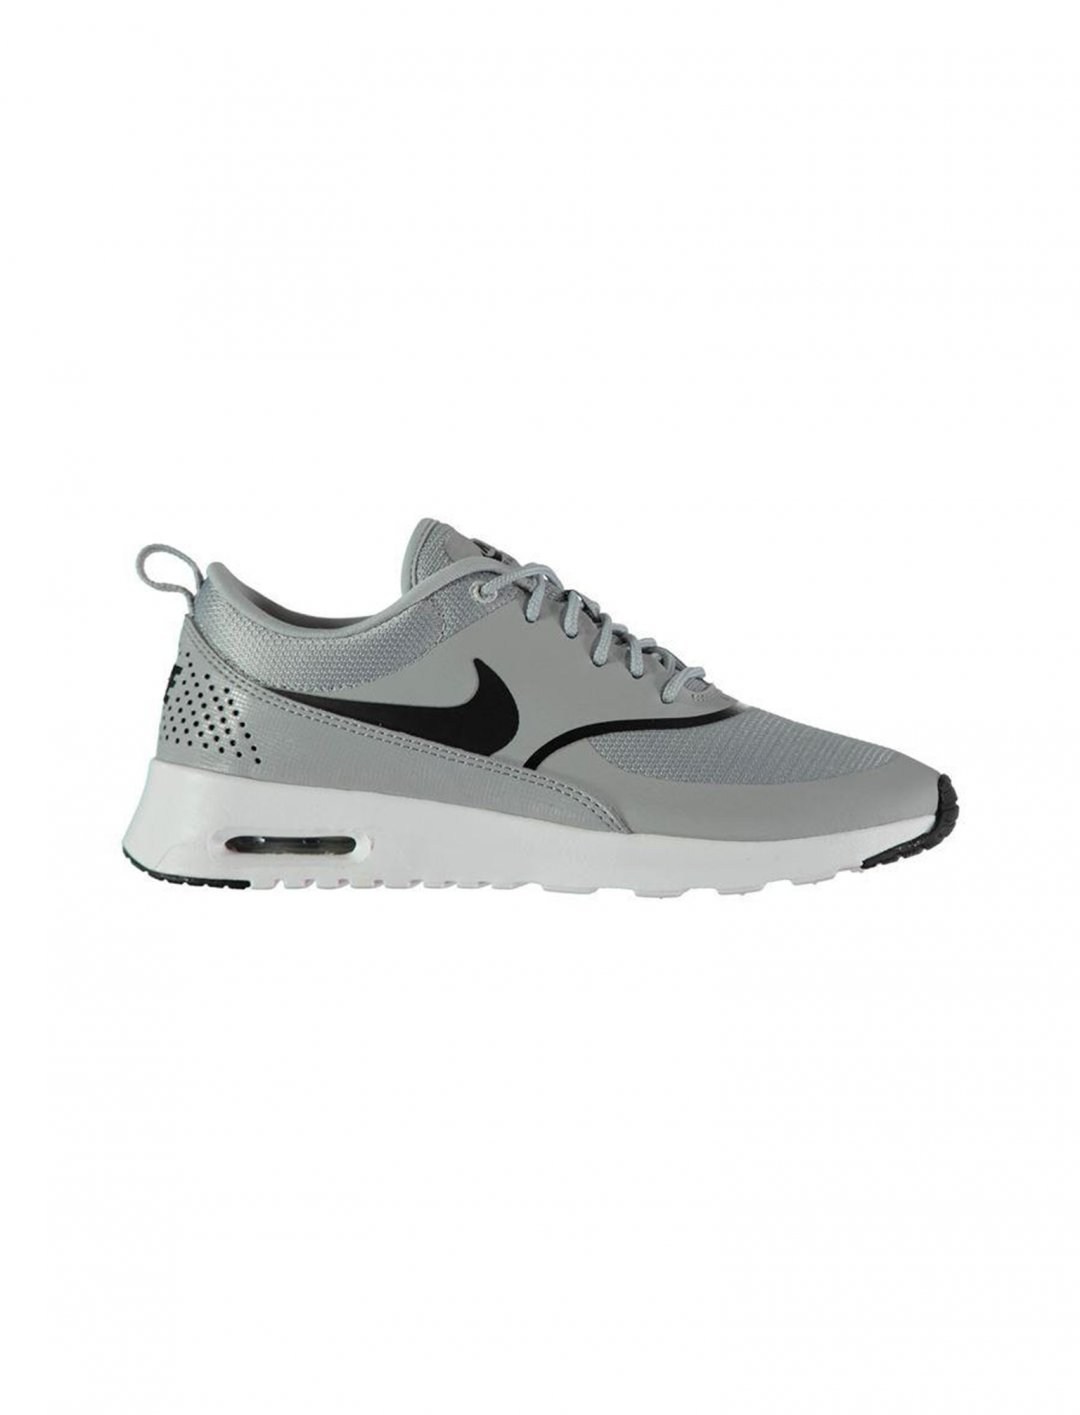 "Nike Air Max Thea Trainers {""id"":12,""product_section_id"":1,""name"":""Shoes"",""order"":12} Nike"